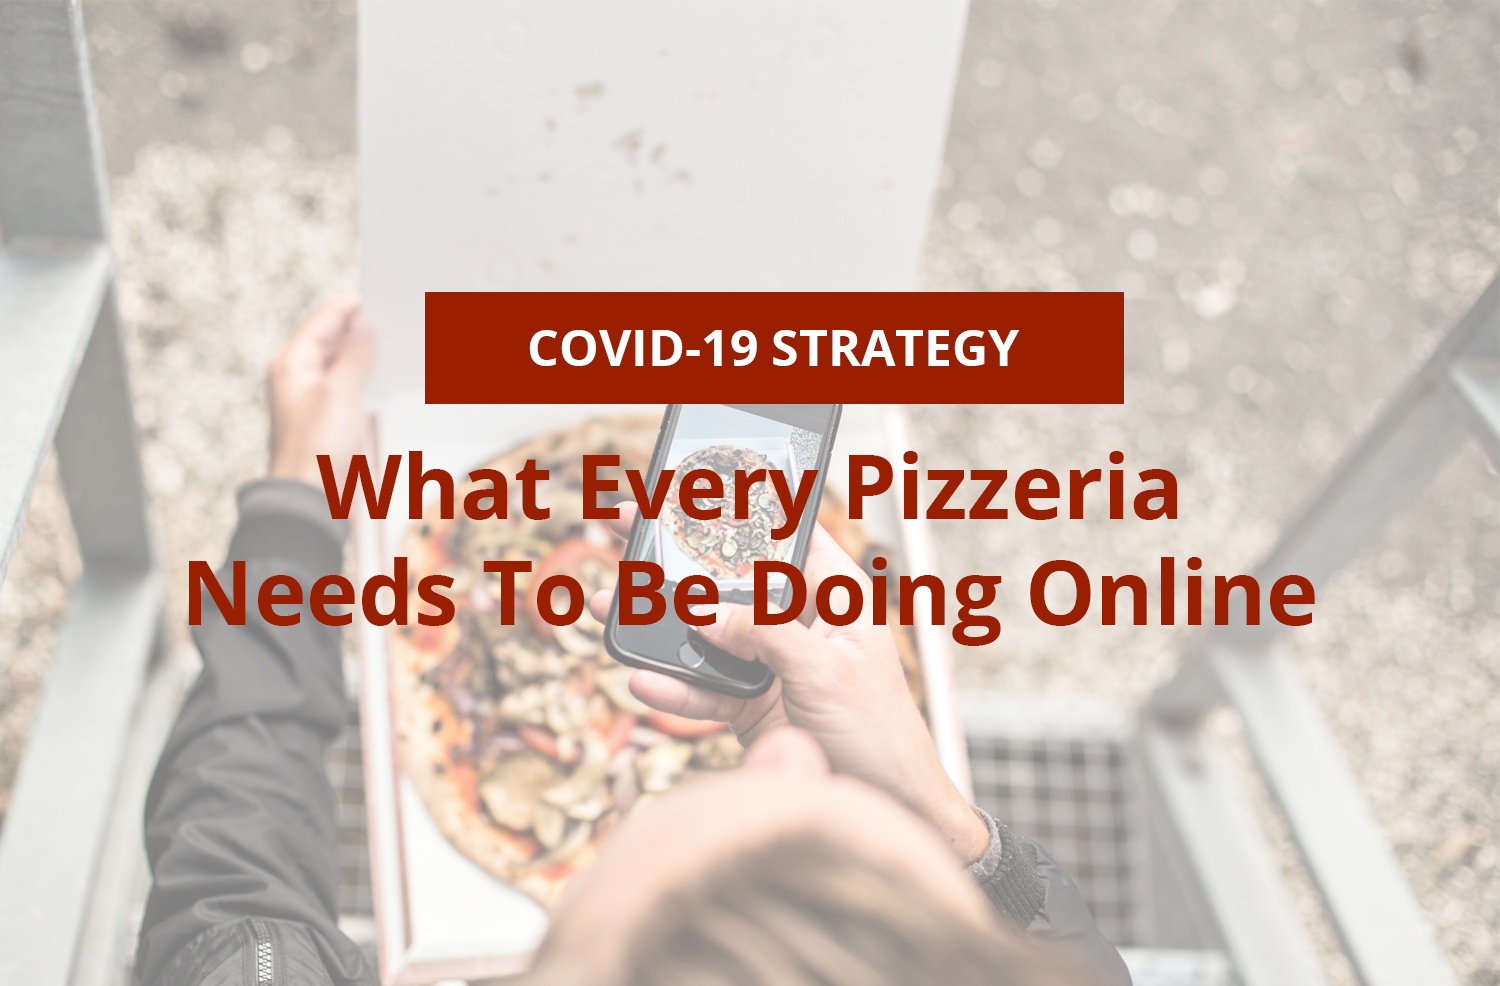 Navigating COVID-19: What Every Pizzeria Needs To Be Doing Online